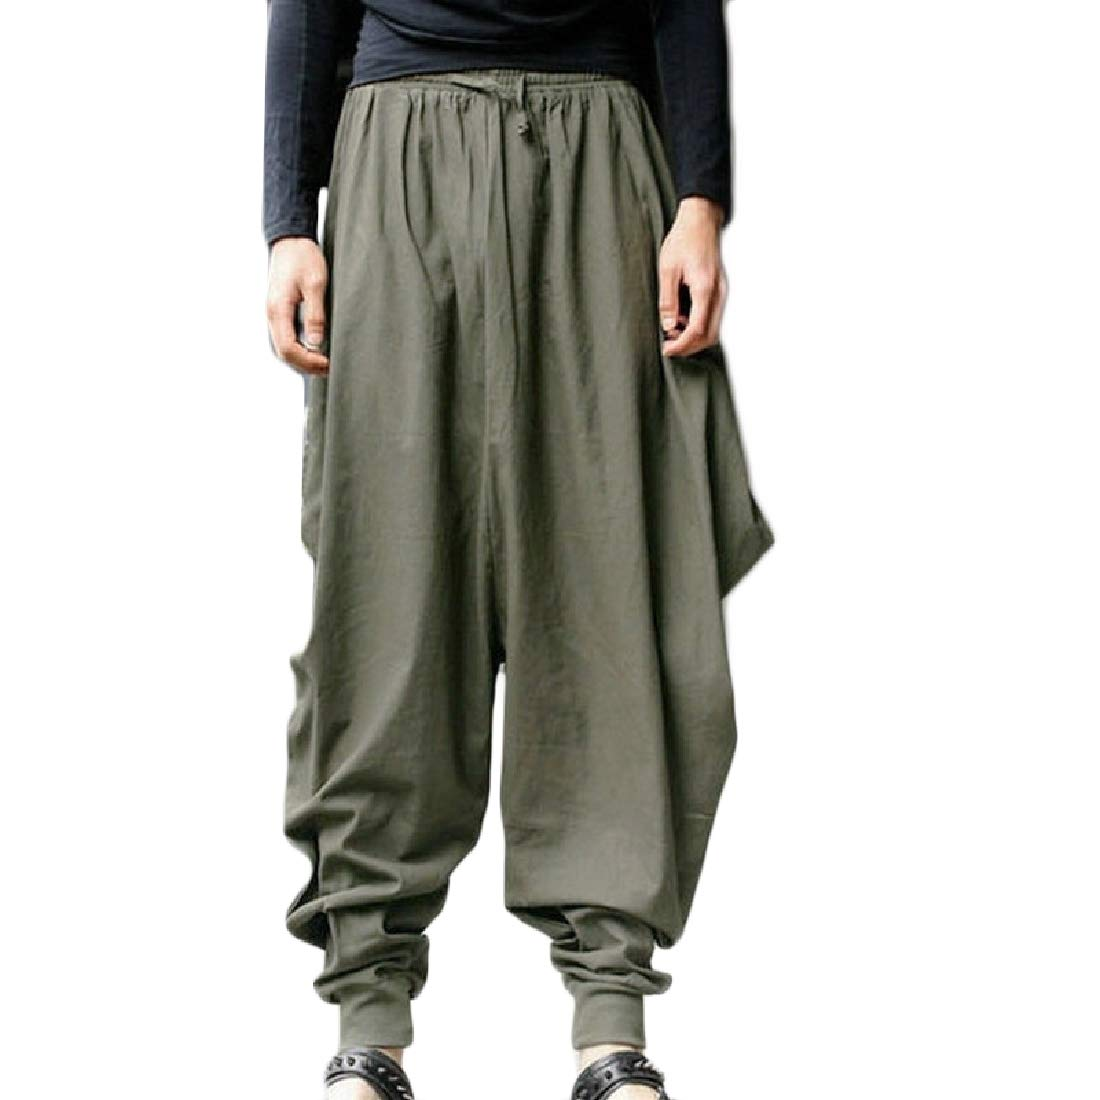 FieerMen Hiphop Casual Drop Crotch Harem Pant Retro Sport Pants